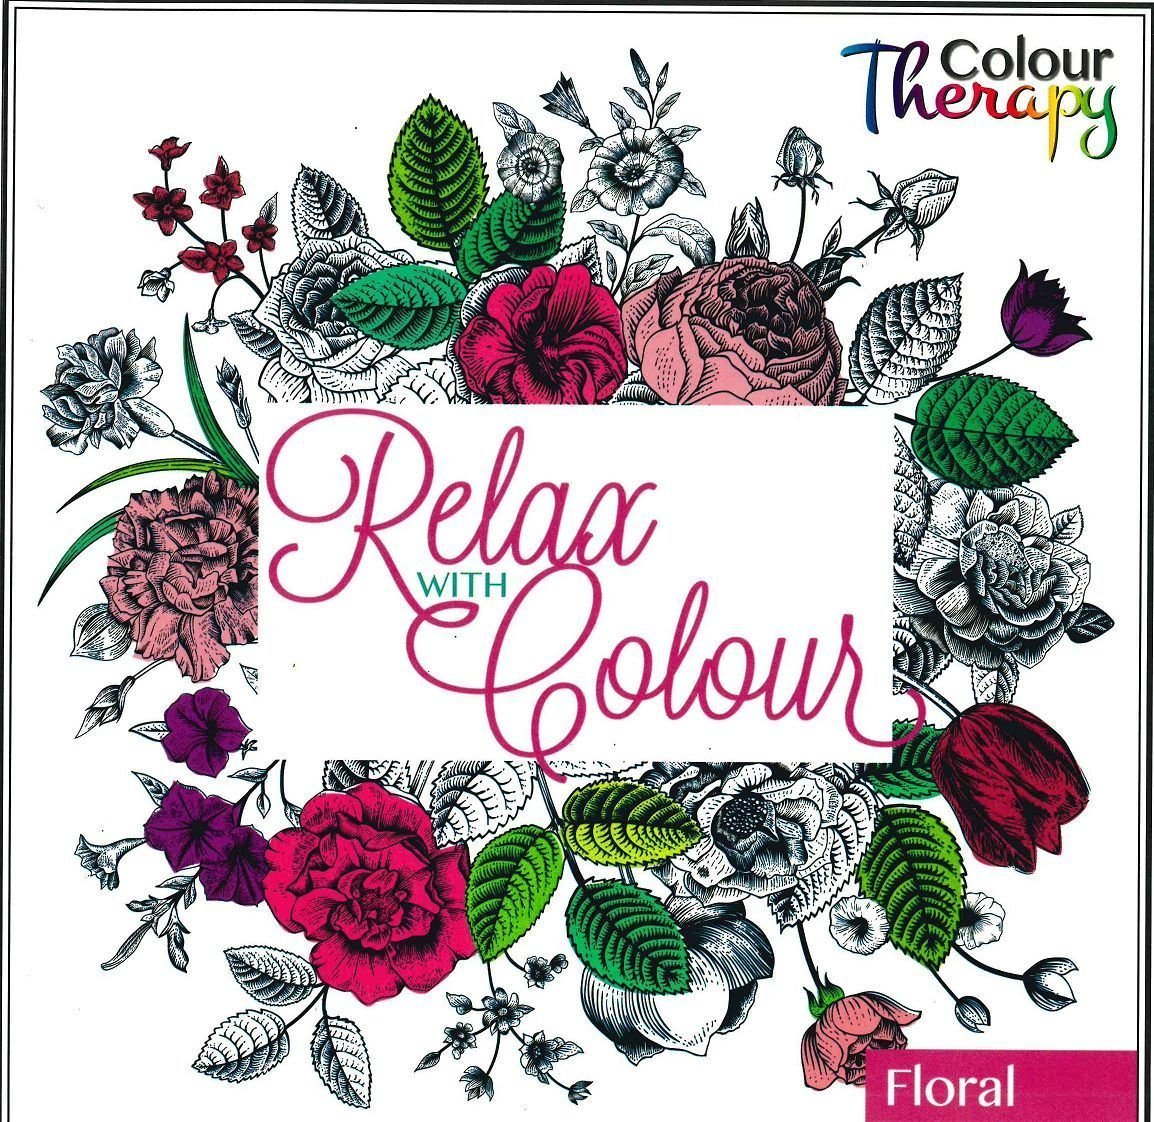 Colour Therapy Art Colouring Book - Relax With Colour - Floral ARPAN